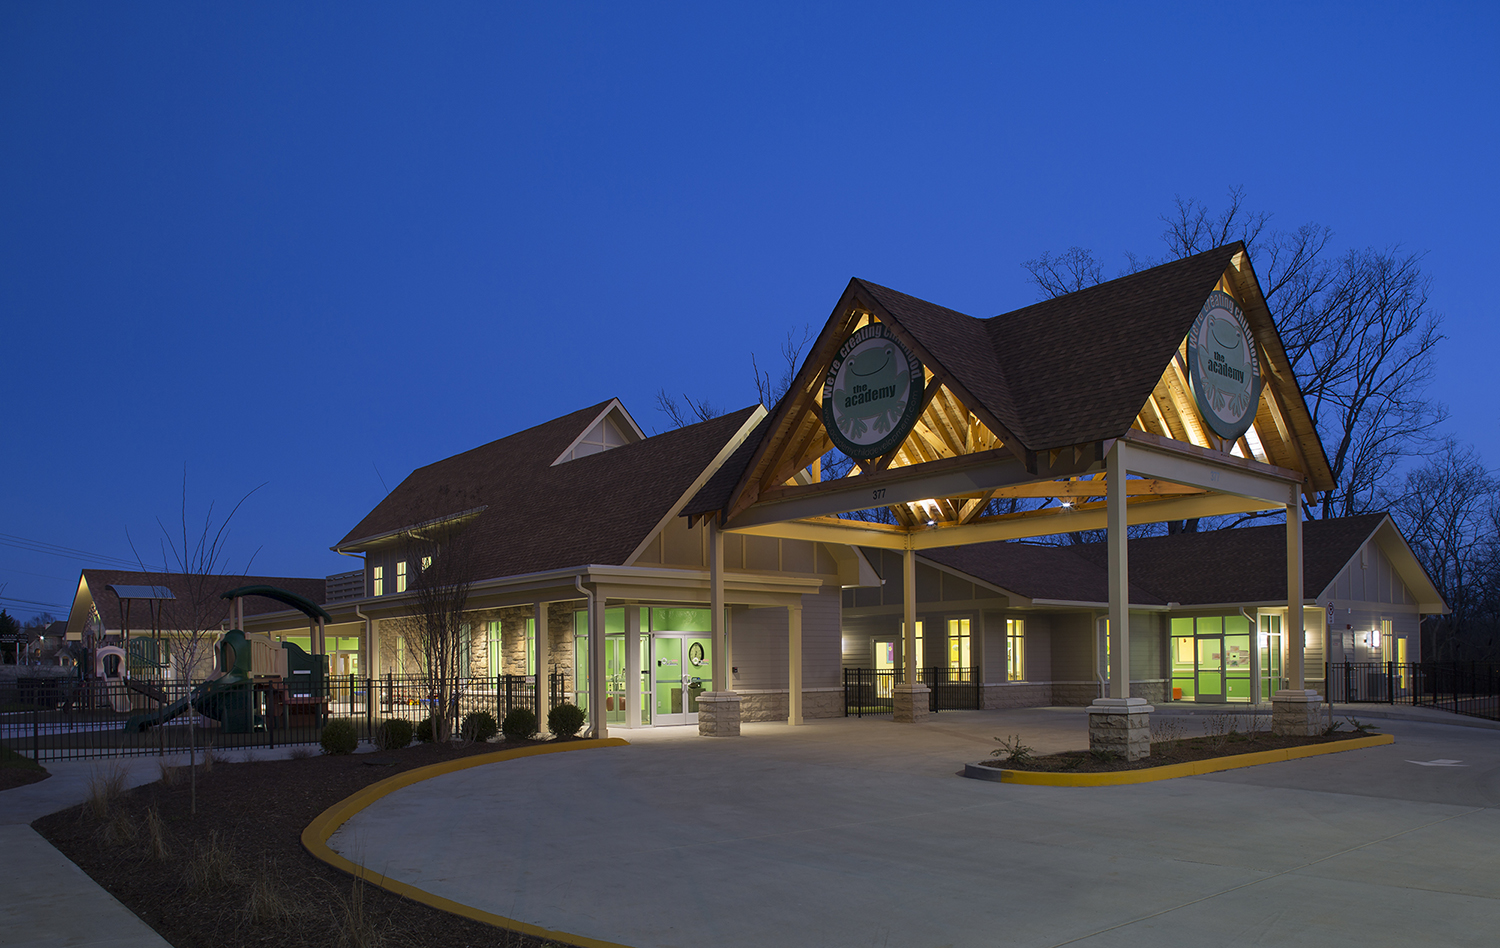 "<a href=""/academy-of-forrest-crossing-franklin-tennessee"">Academy of Forrest Crossing<br />Franklin, Tennessee</a>"